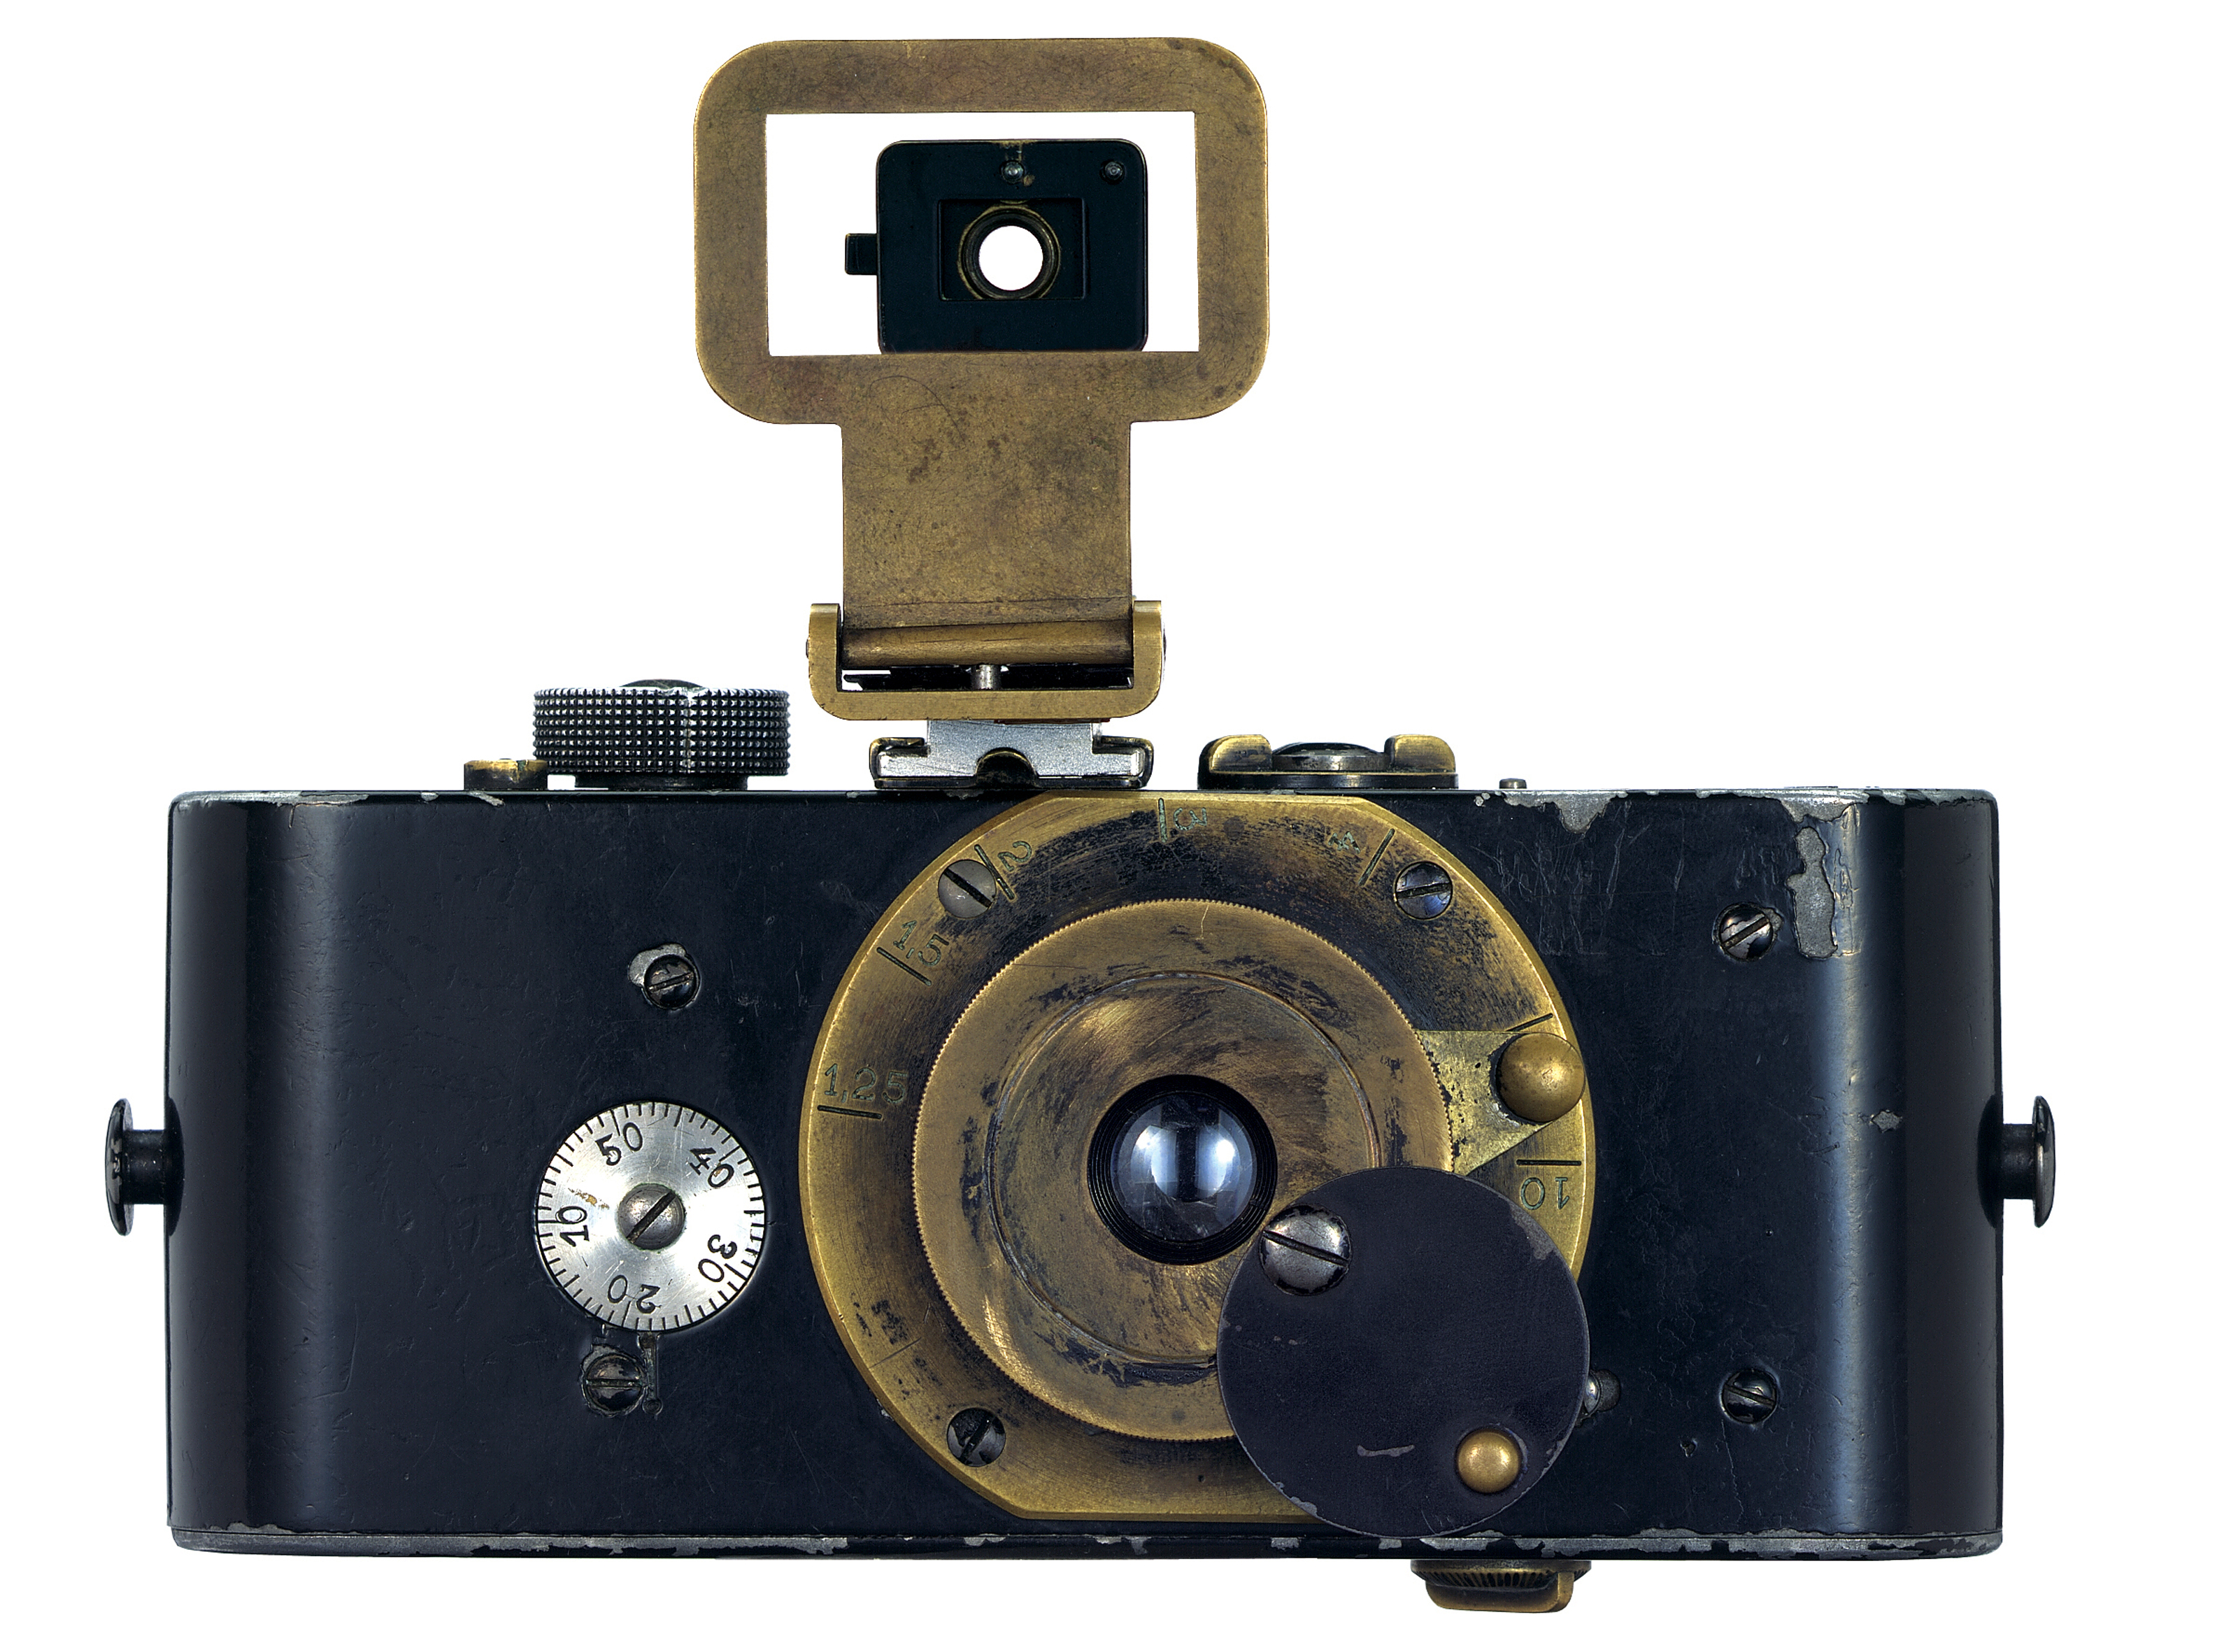 07_Ur-Leica, built by Oskar Barnack, completed in 1914 © Leica Camera AG